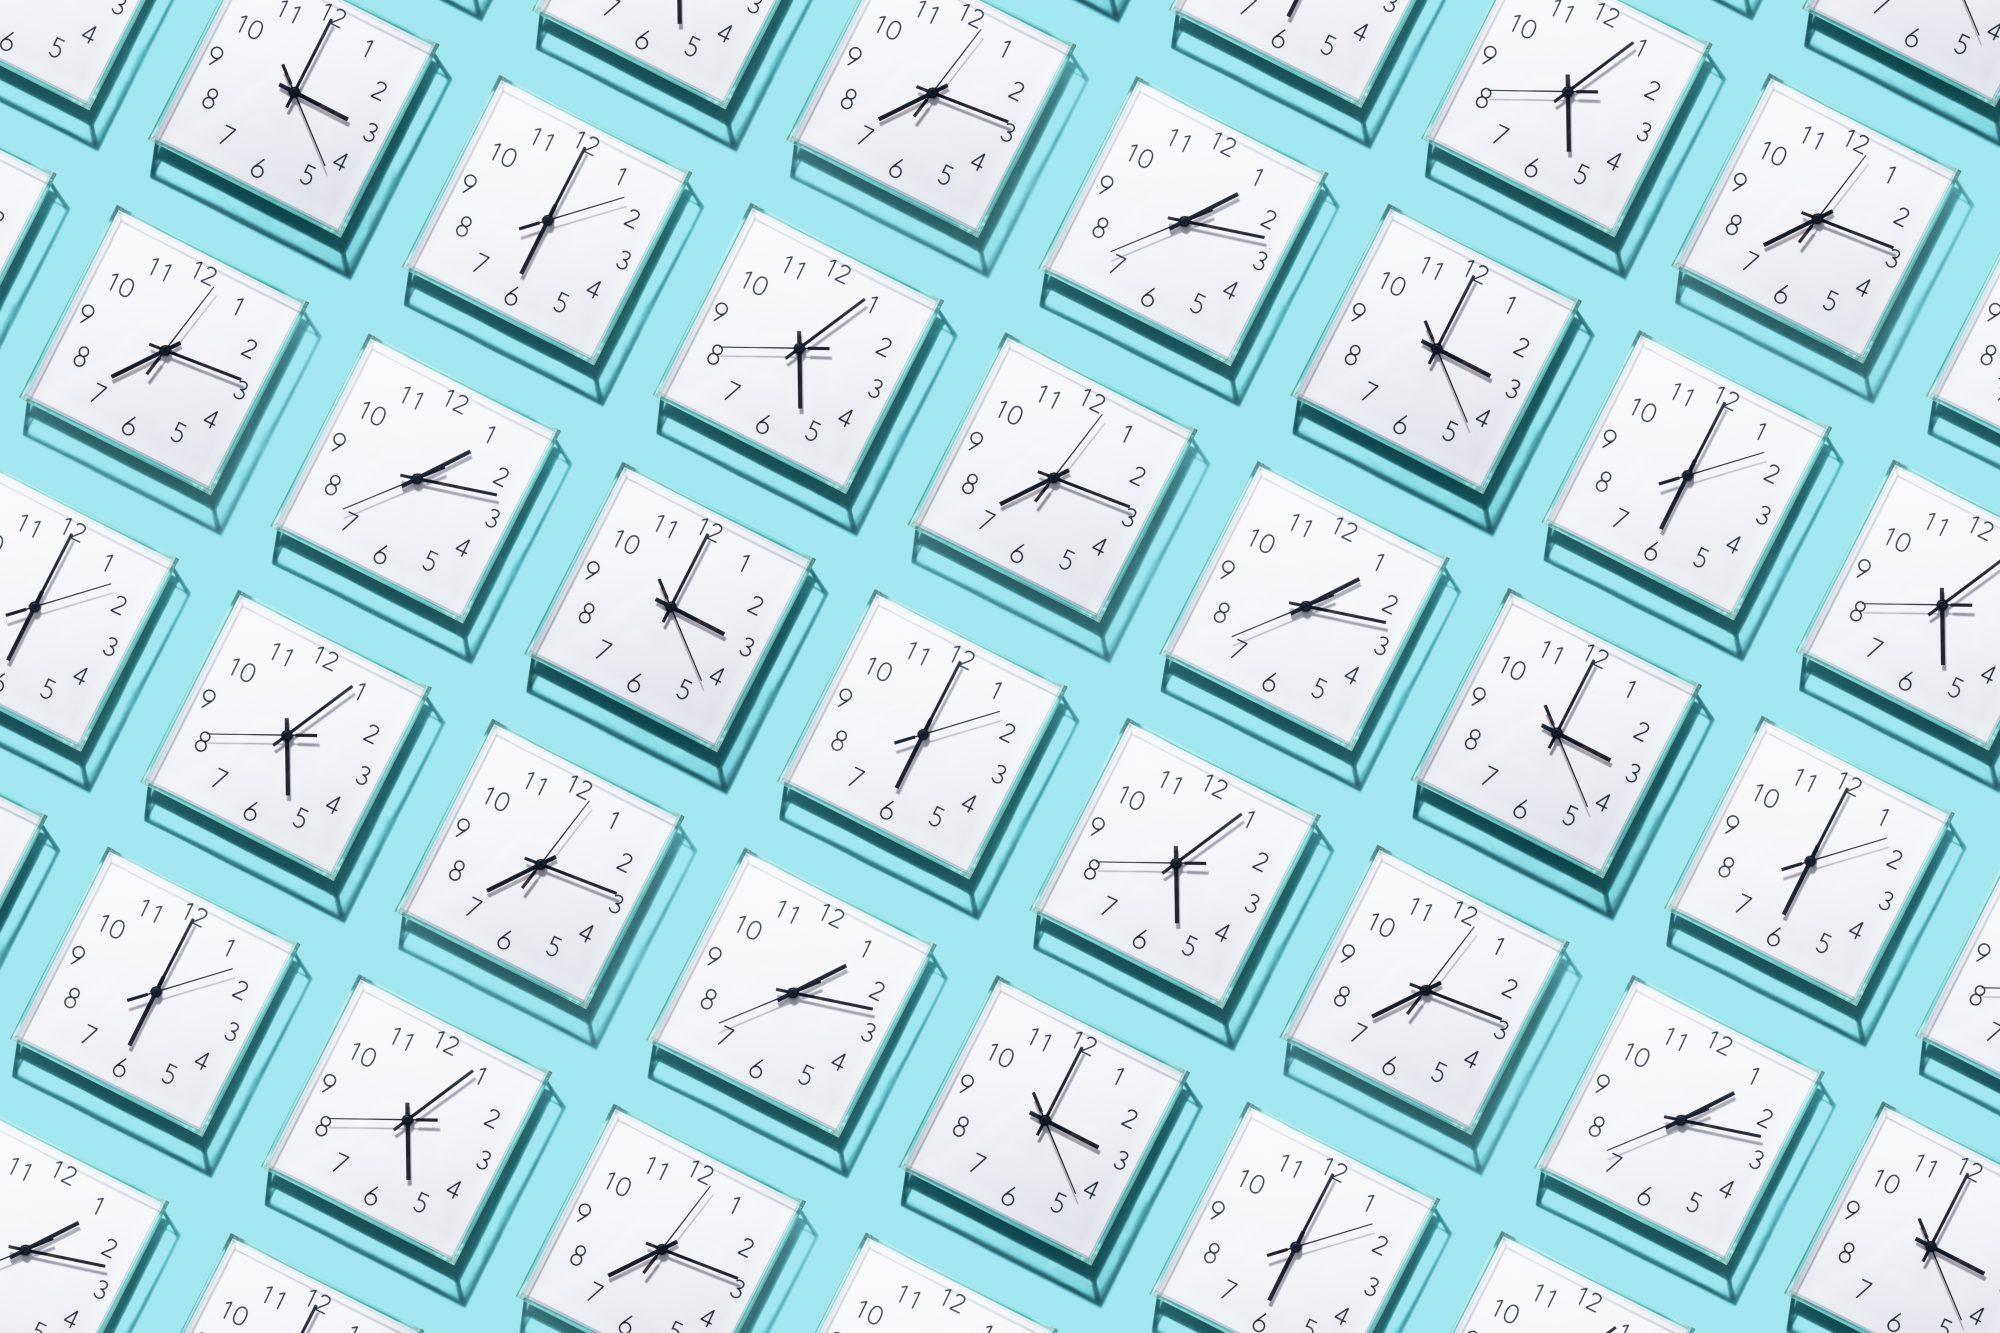 Neatly Arranged White Colored Wall Clocks Displays Different Time on Solid Blue Background